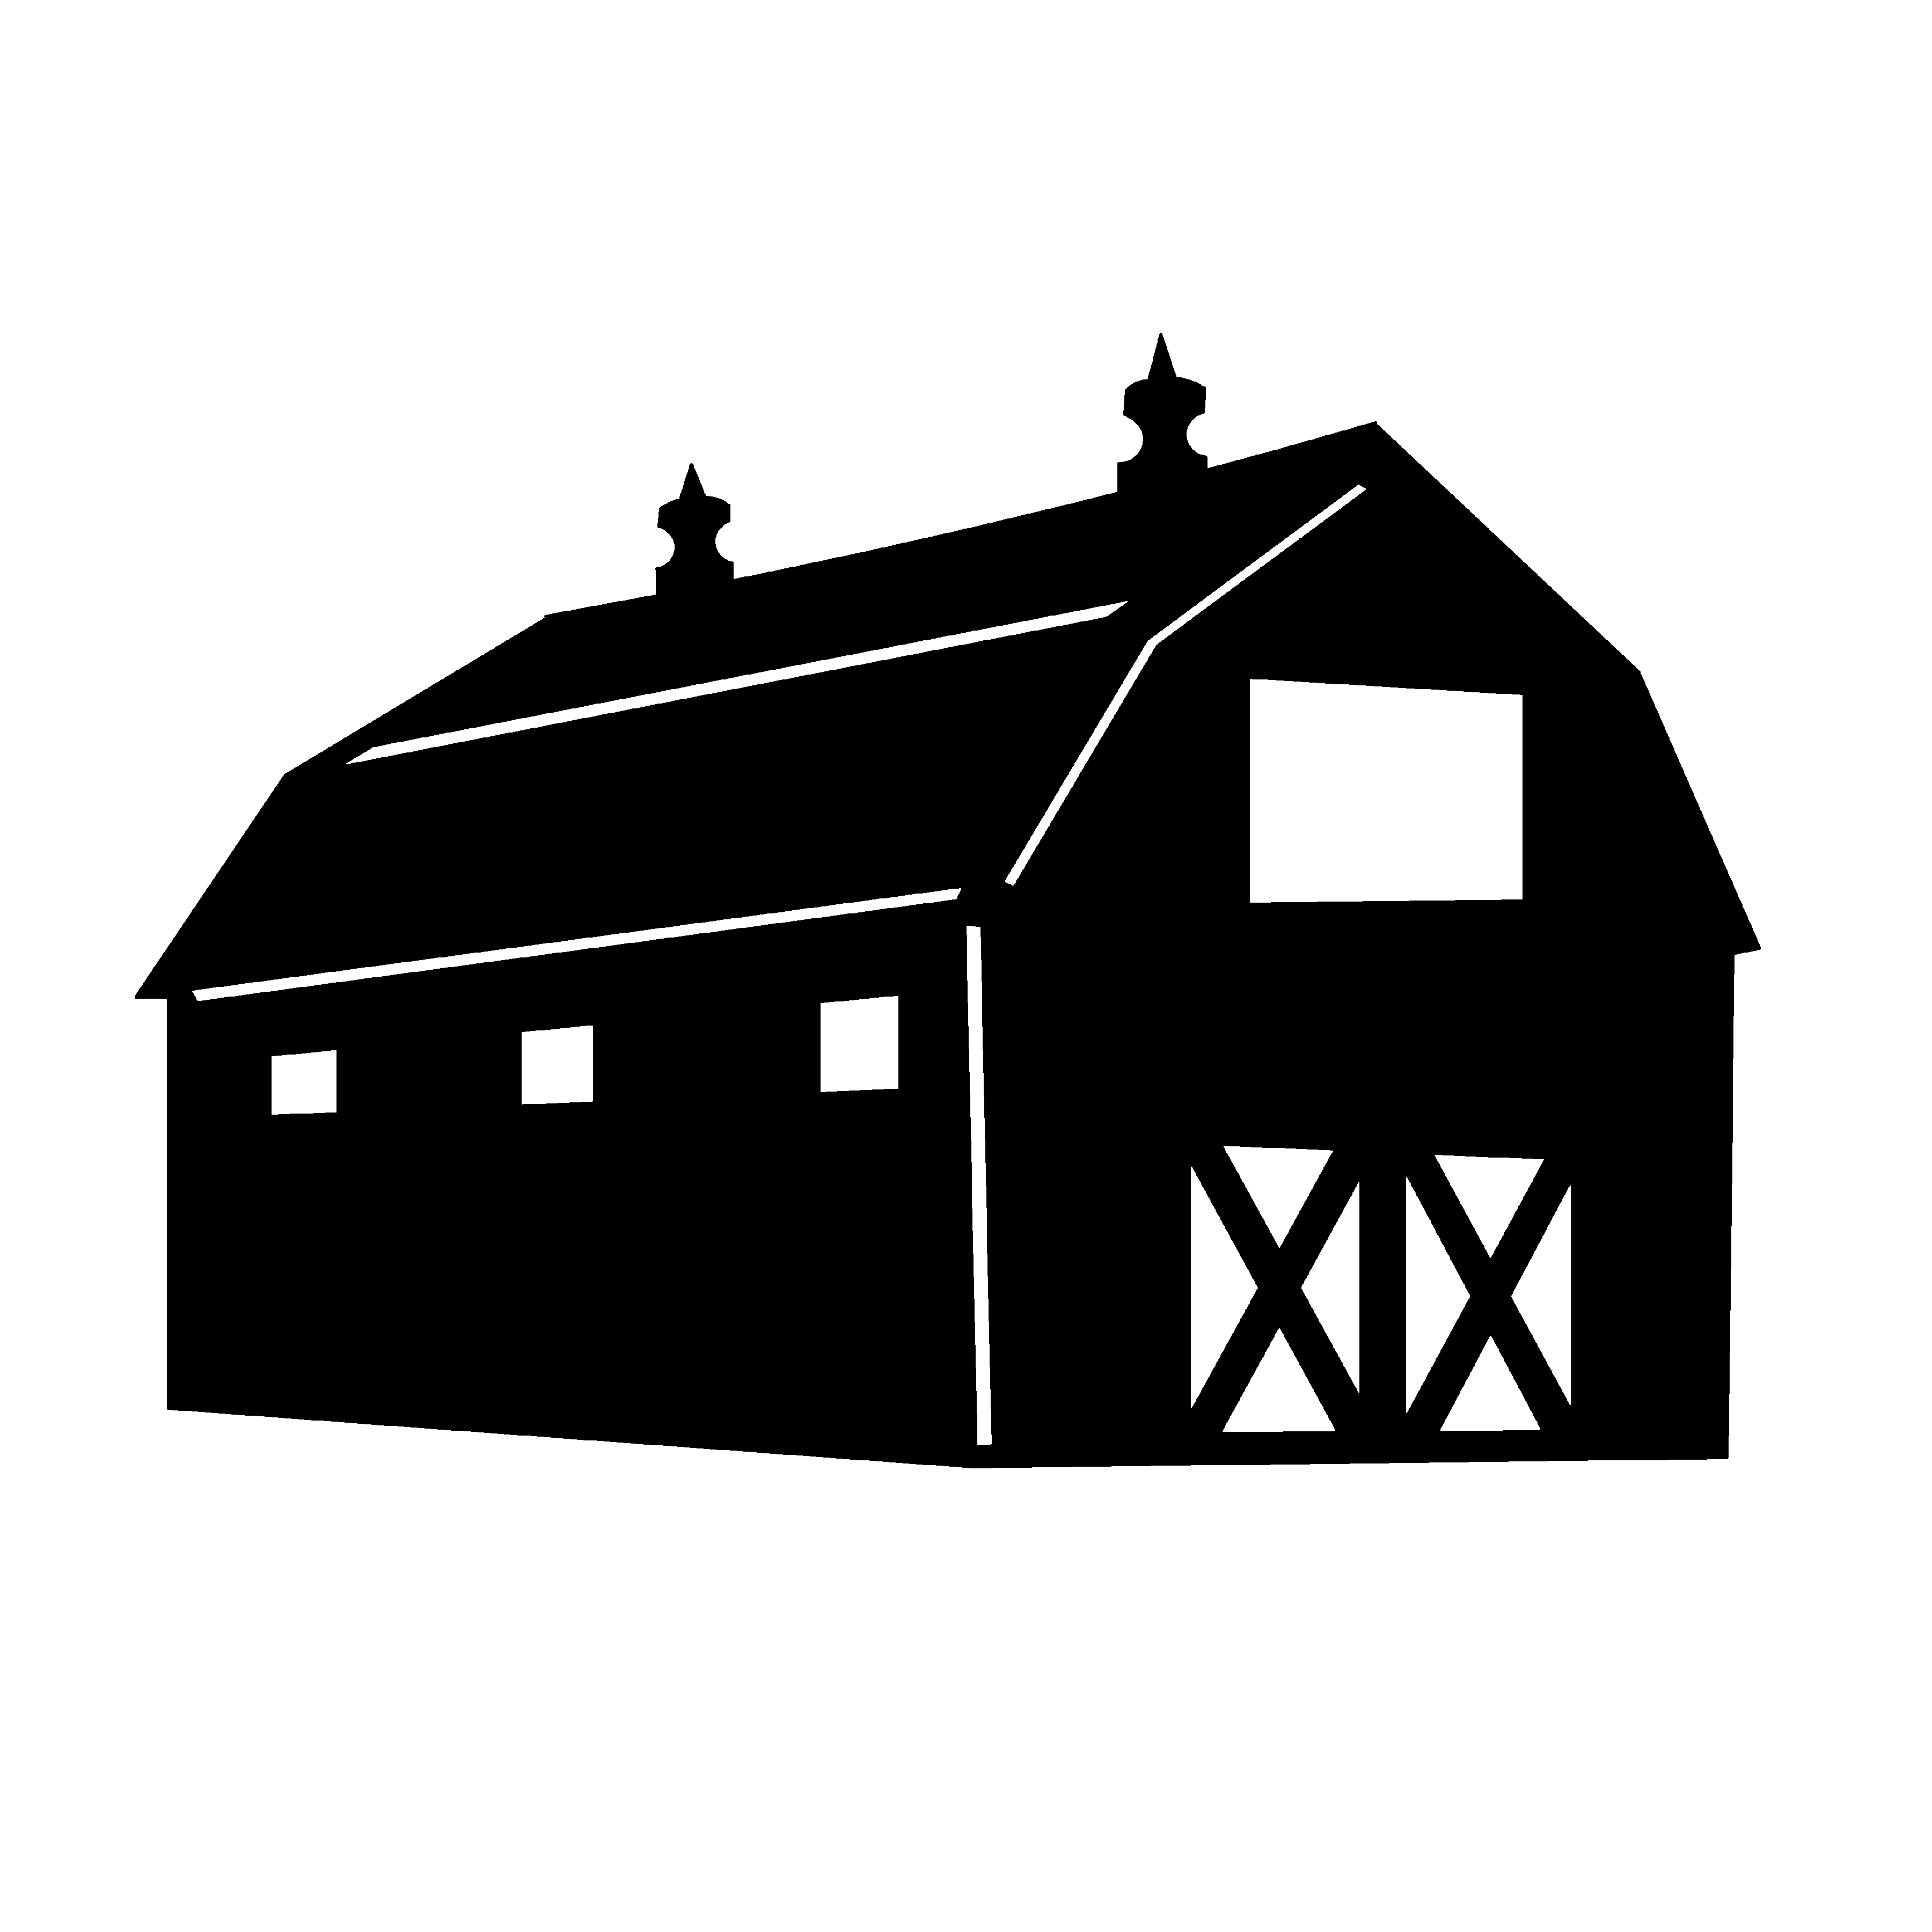 Nice shed clipart red barn clip art furniture decorating ideas.